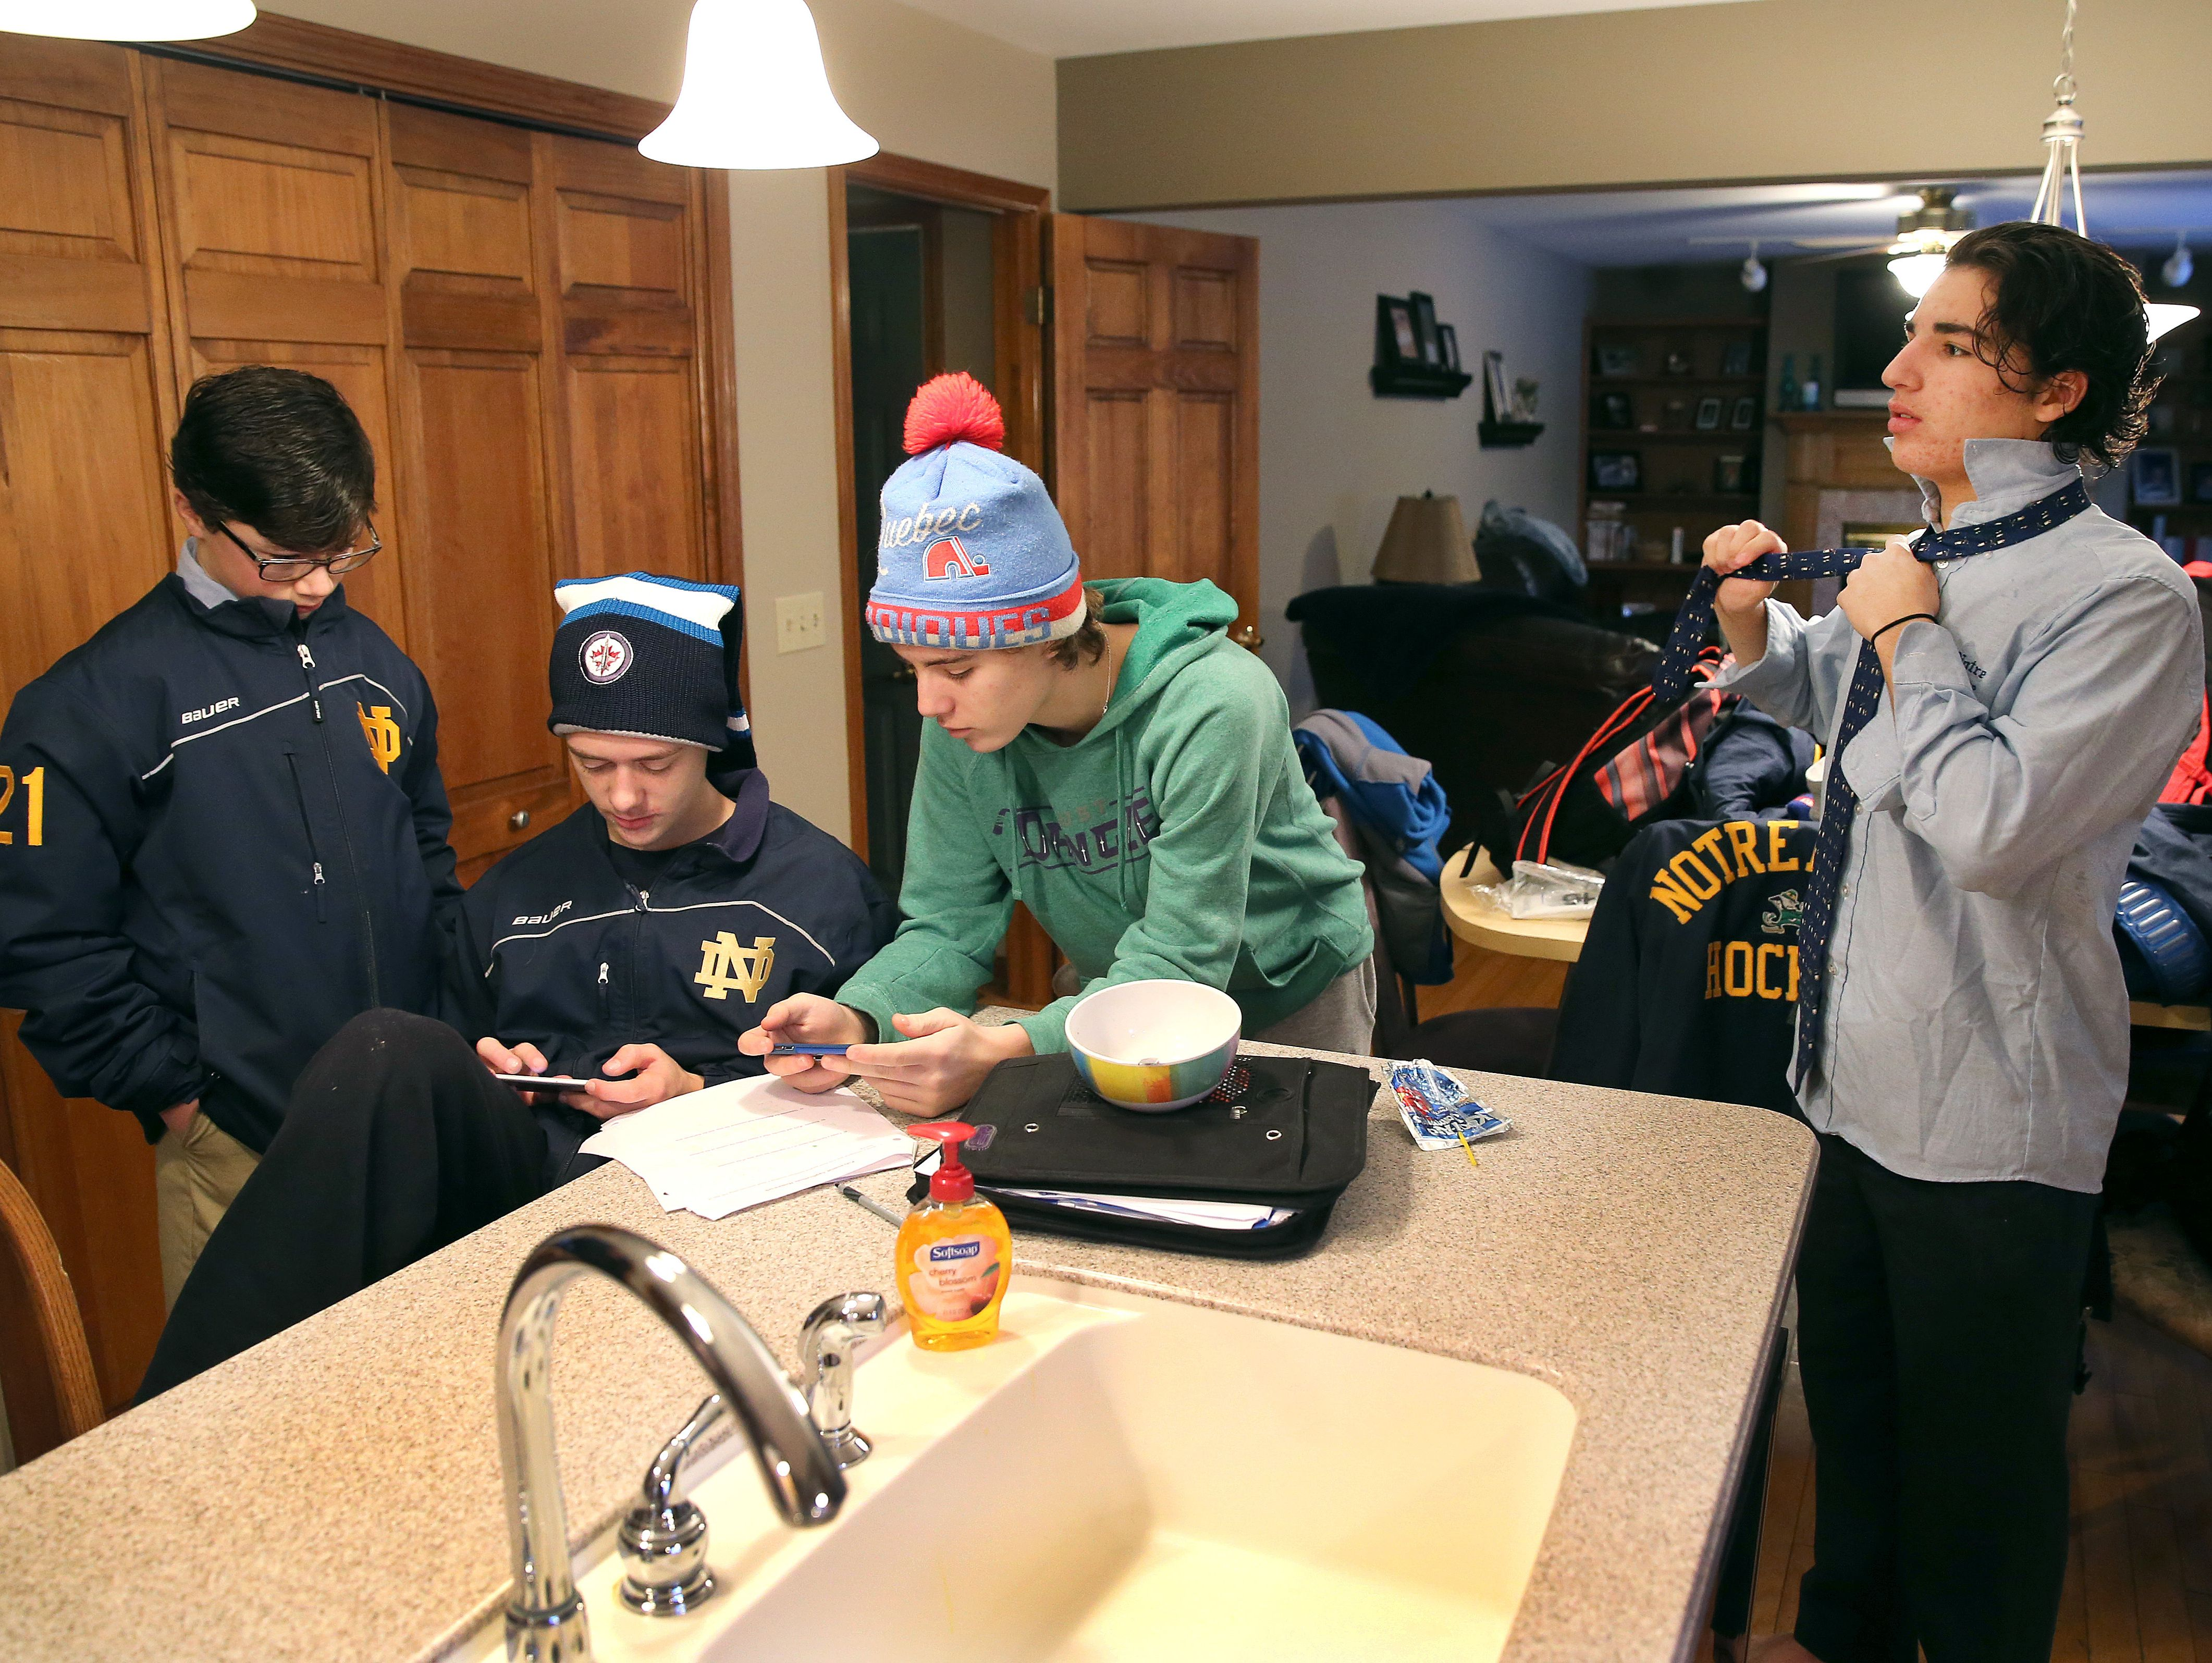 Batavia Notre Dame hockey players get ready for school after an early-morning practice.